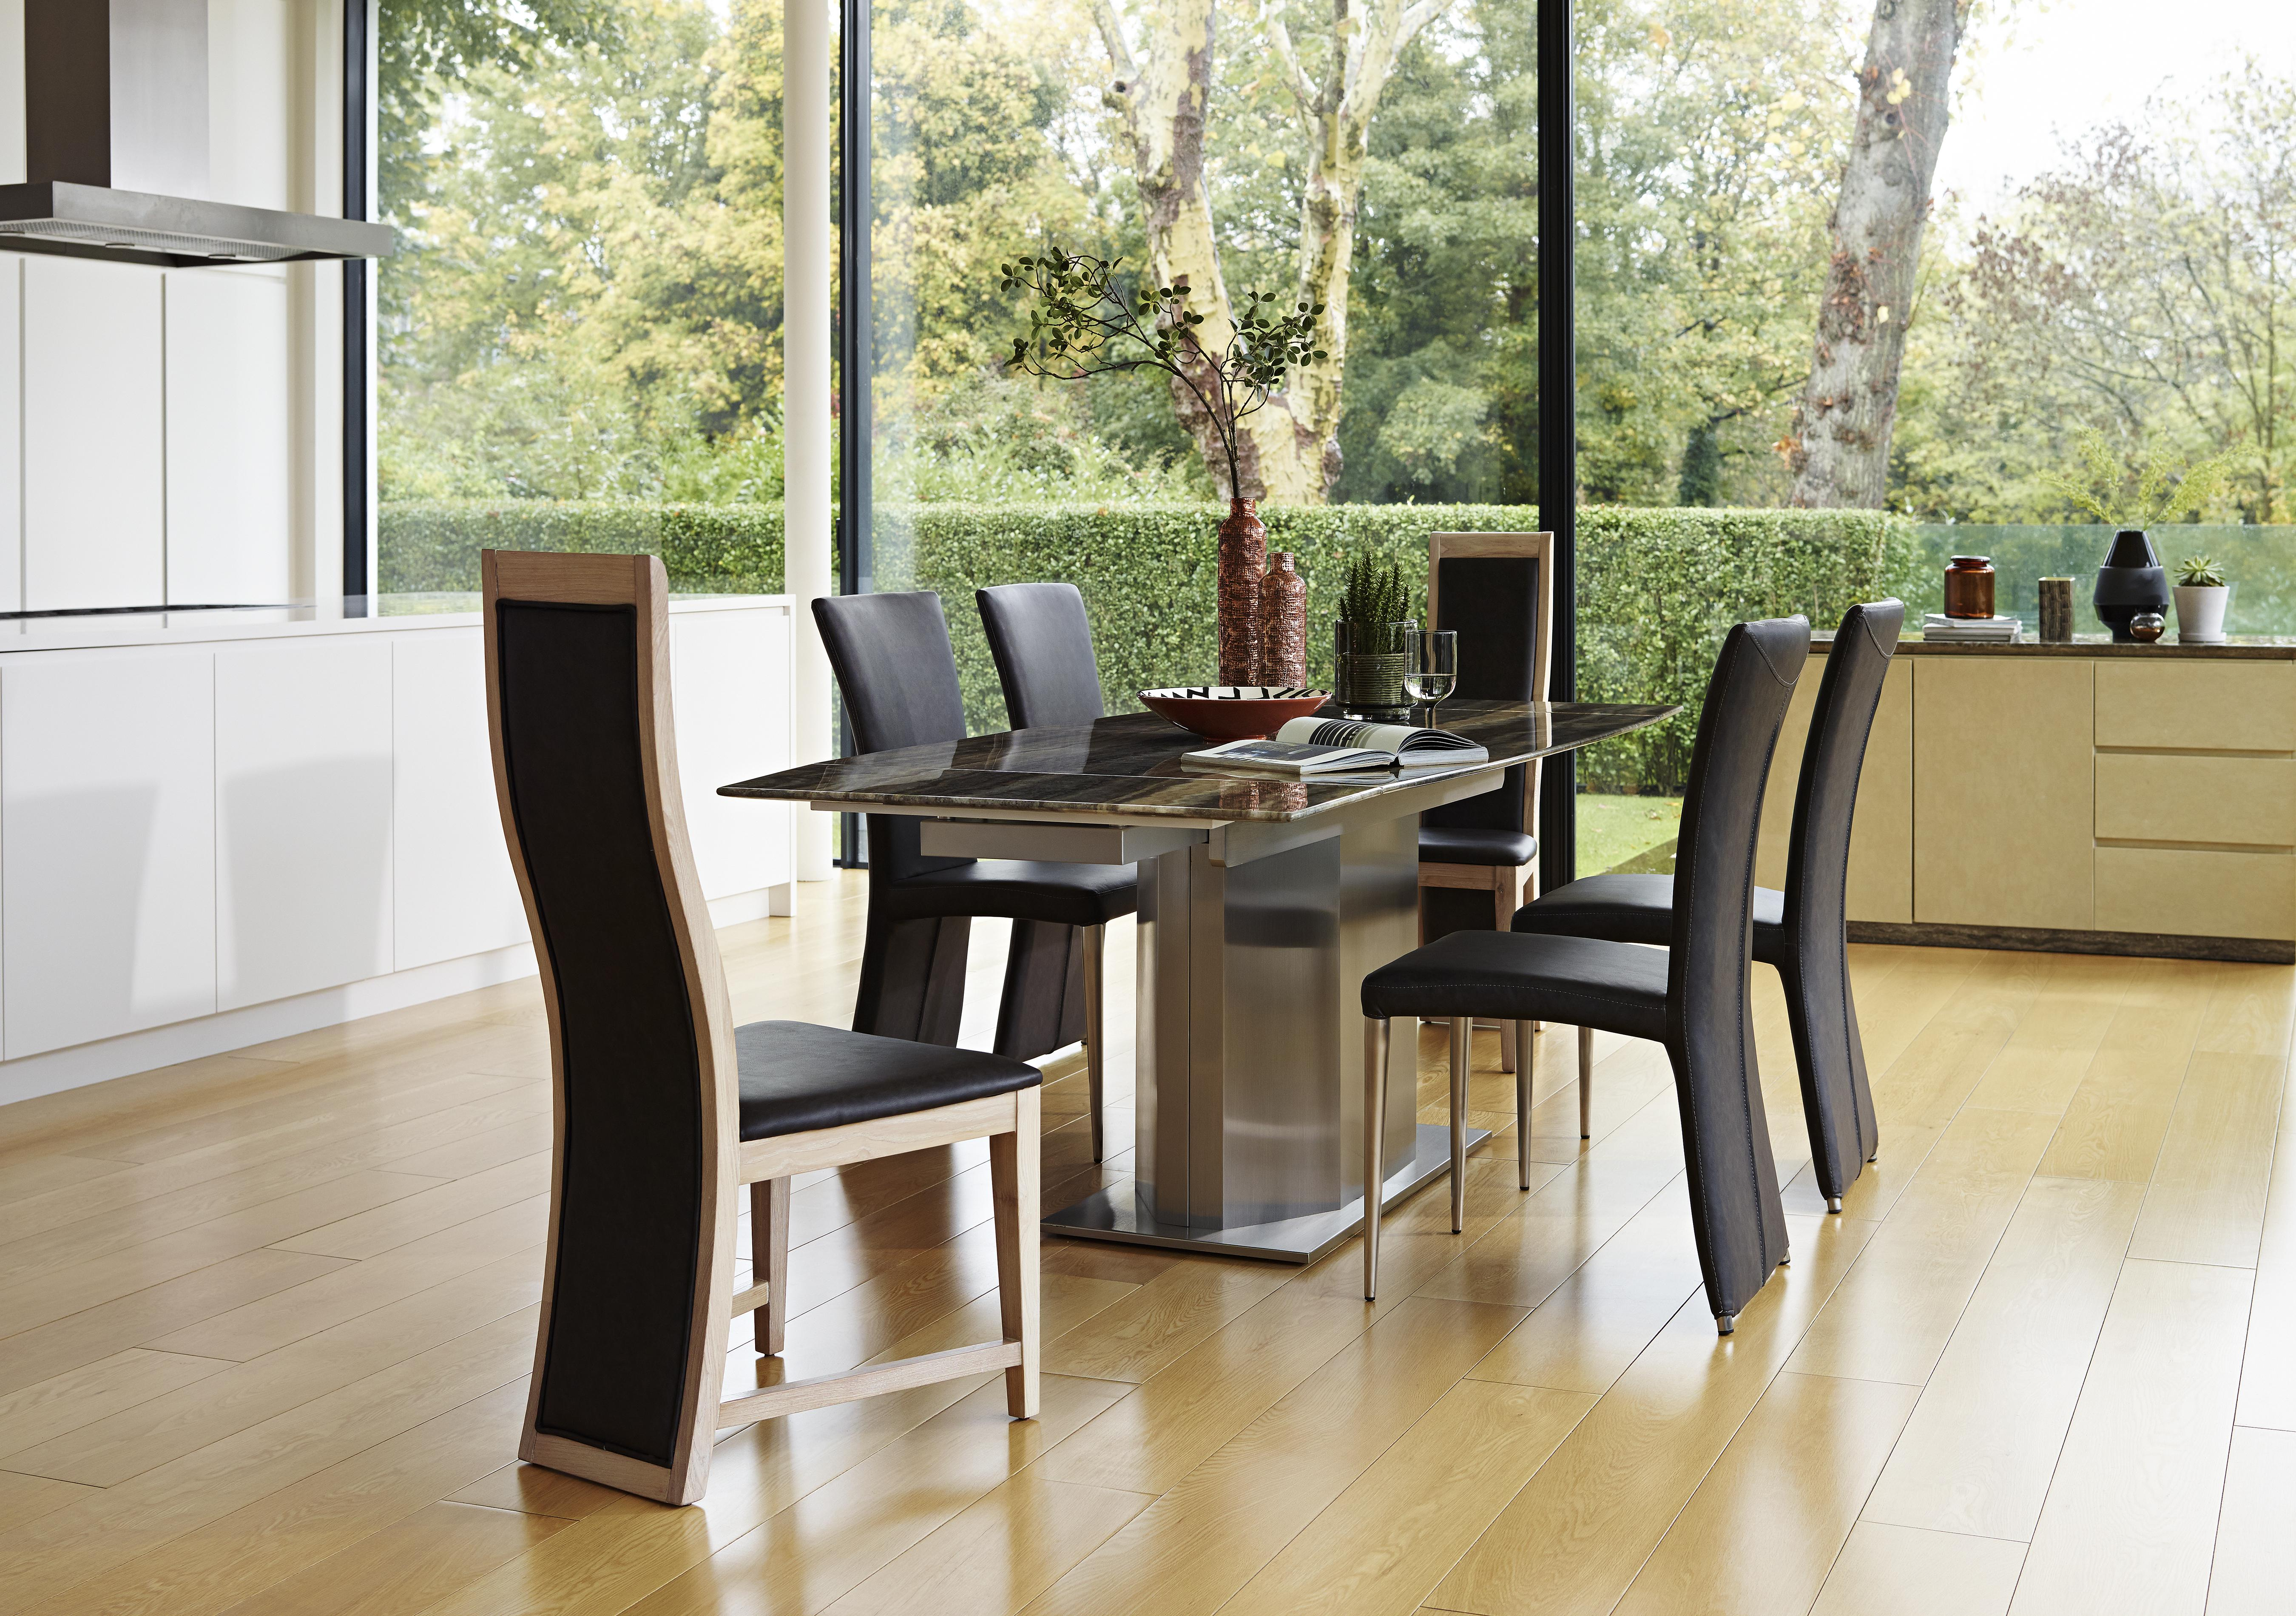 dining room furniture chairs. Details Dining Room Furniture Chairs O